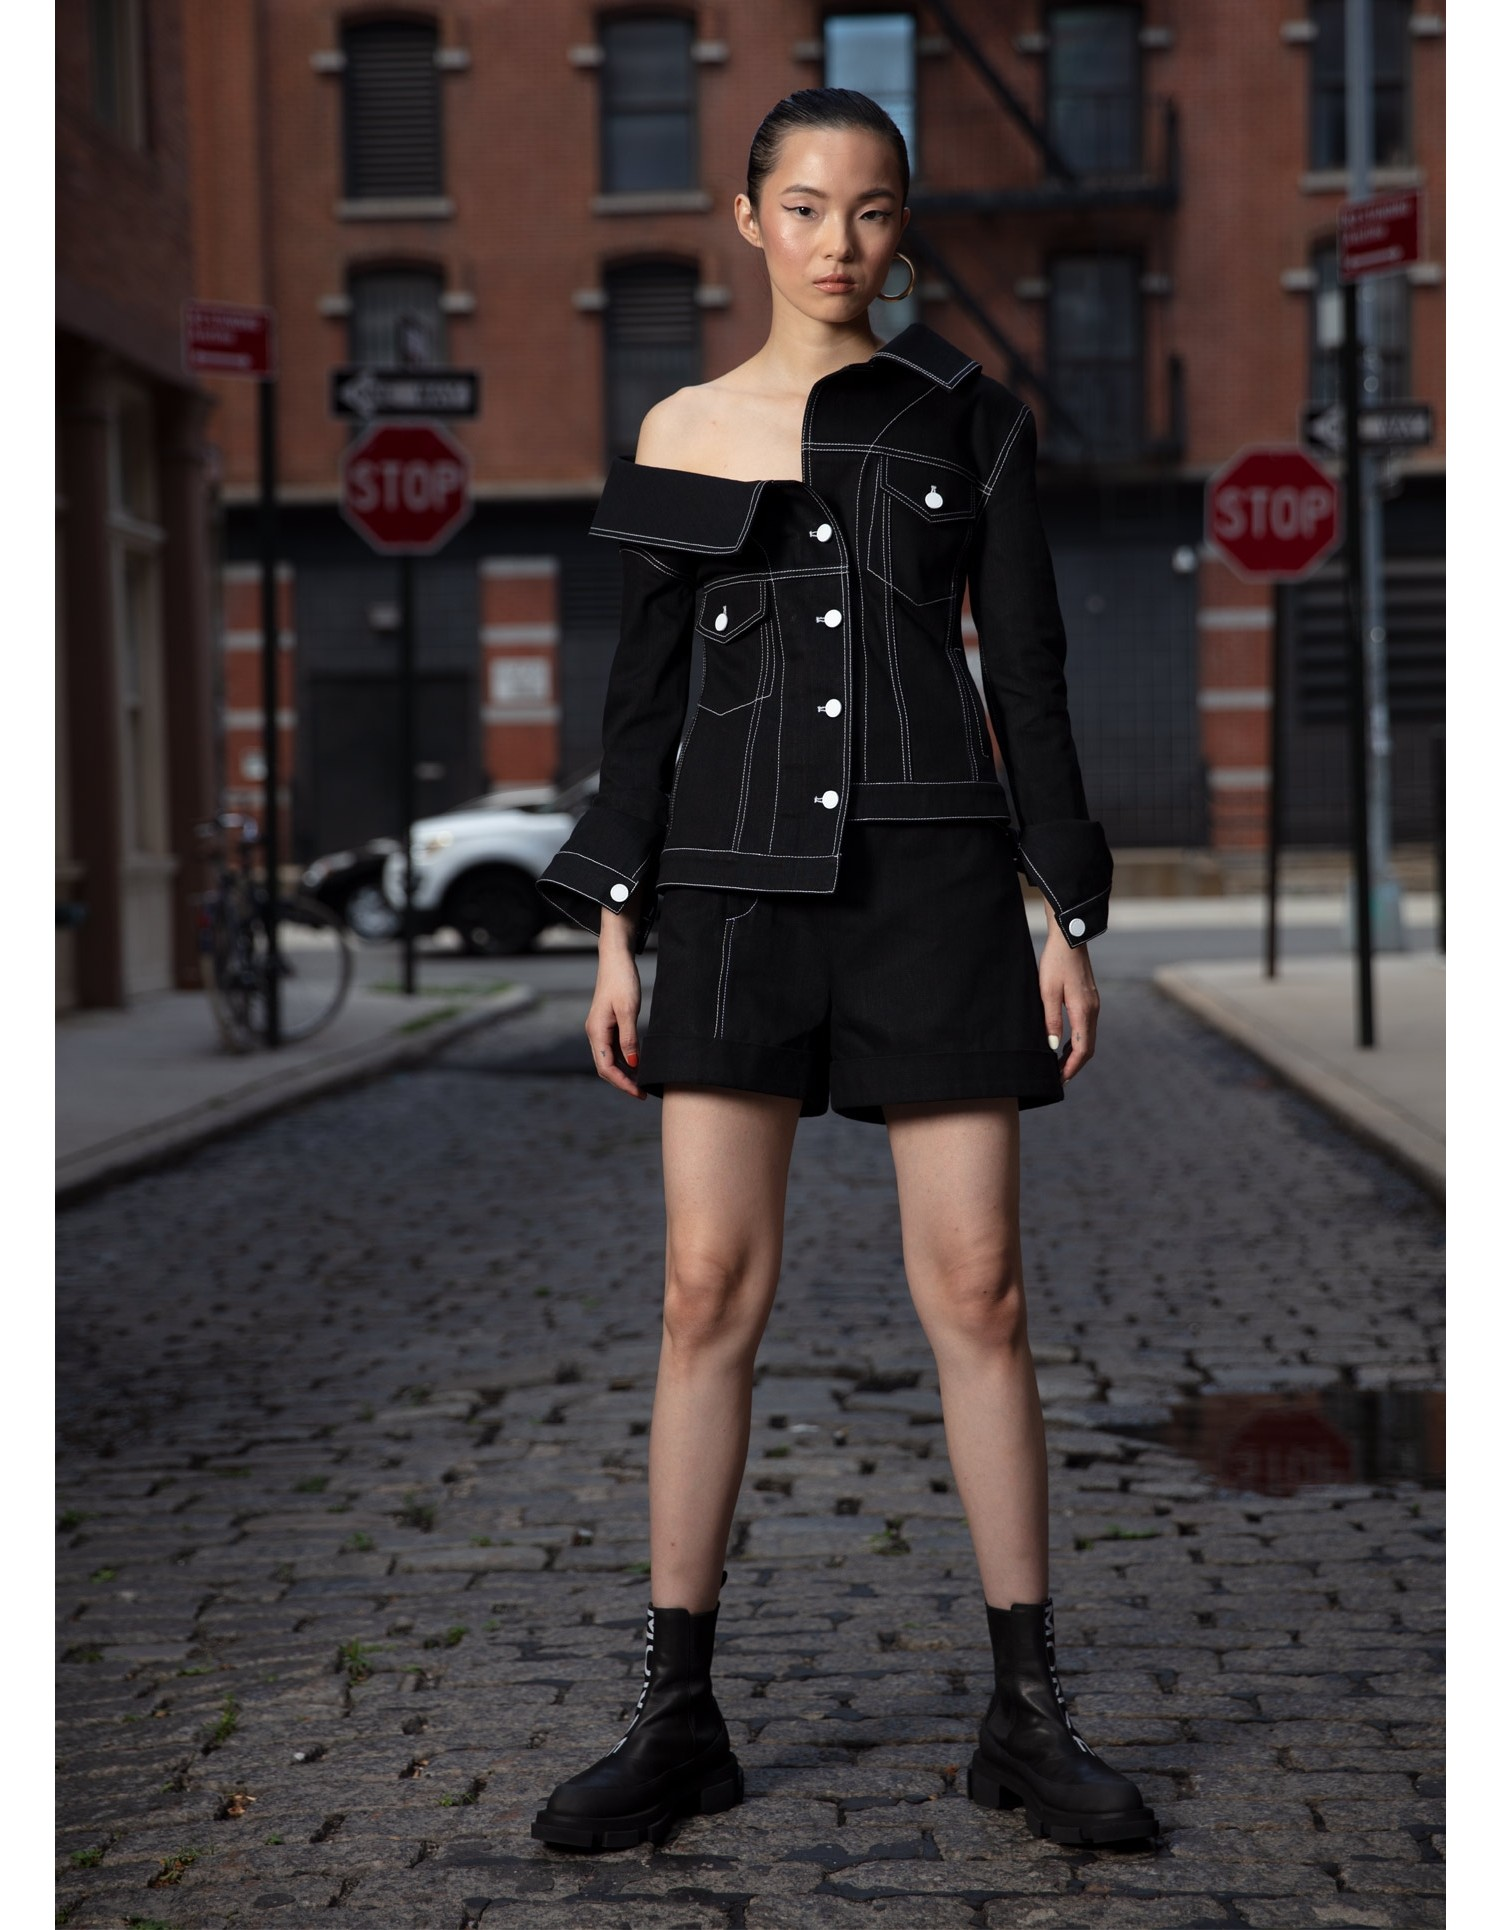 MONSE Crooked Denim Jacket in Black on Model Front View